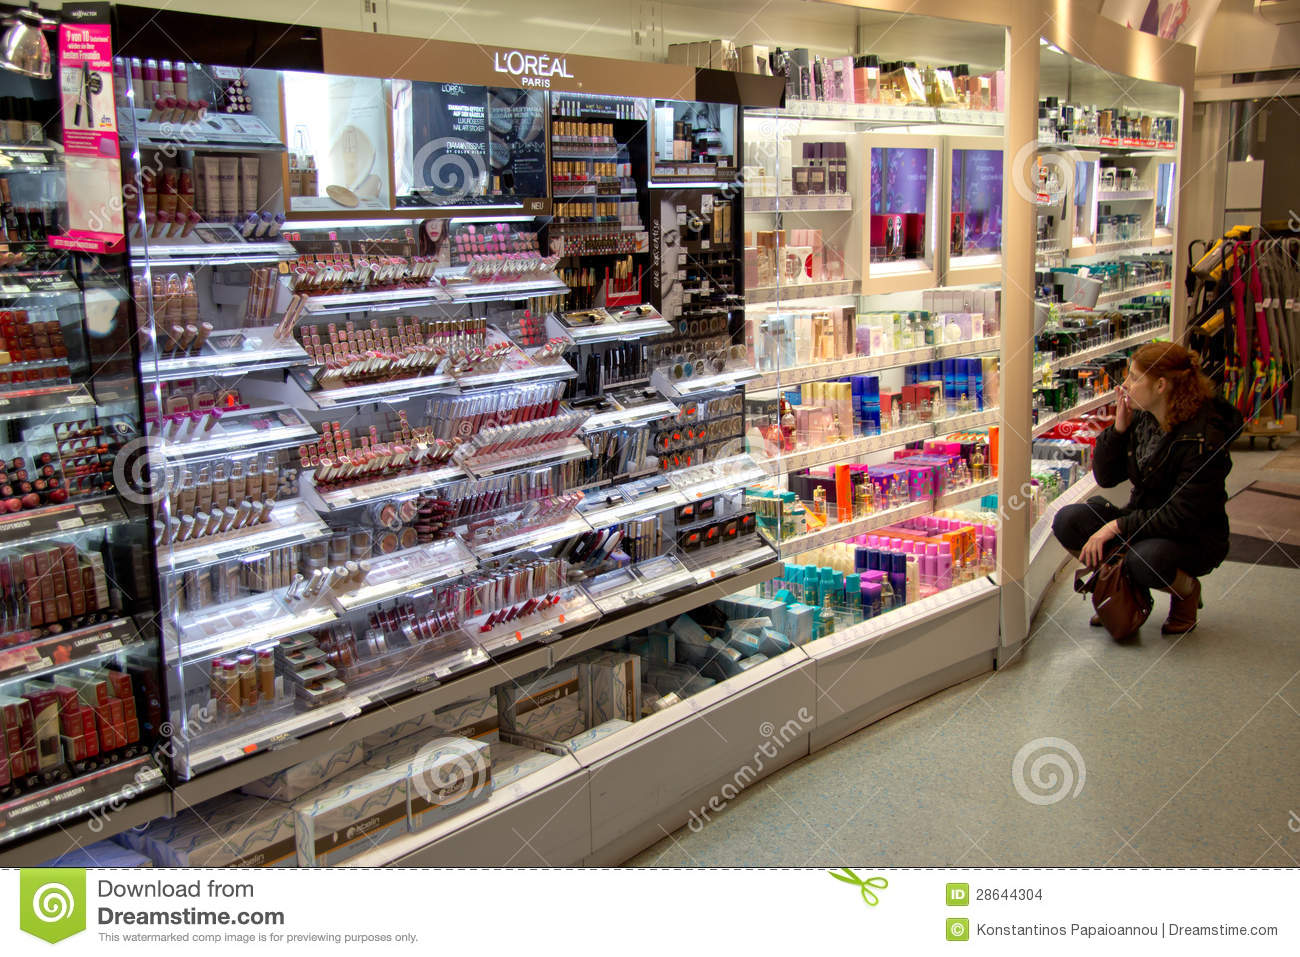 Comment: Perfumes & Cosmetics: Online cosmetics store in Montgomery... By:  Makayla